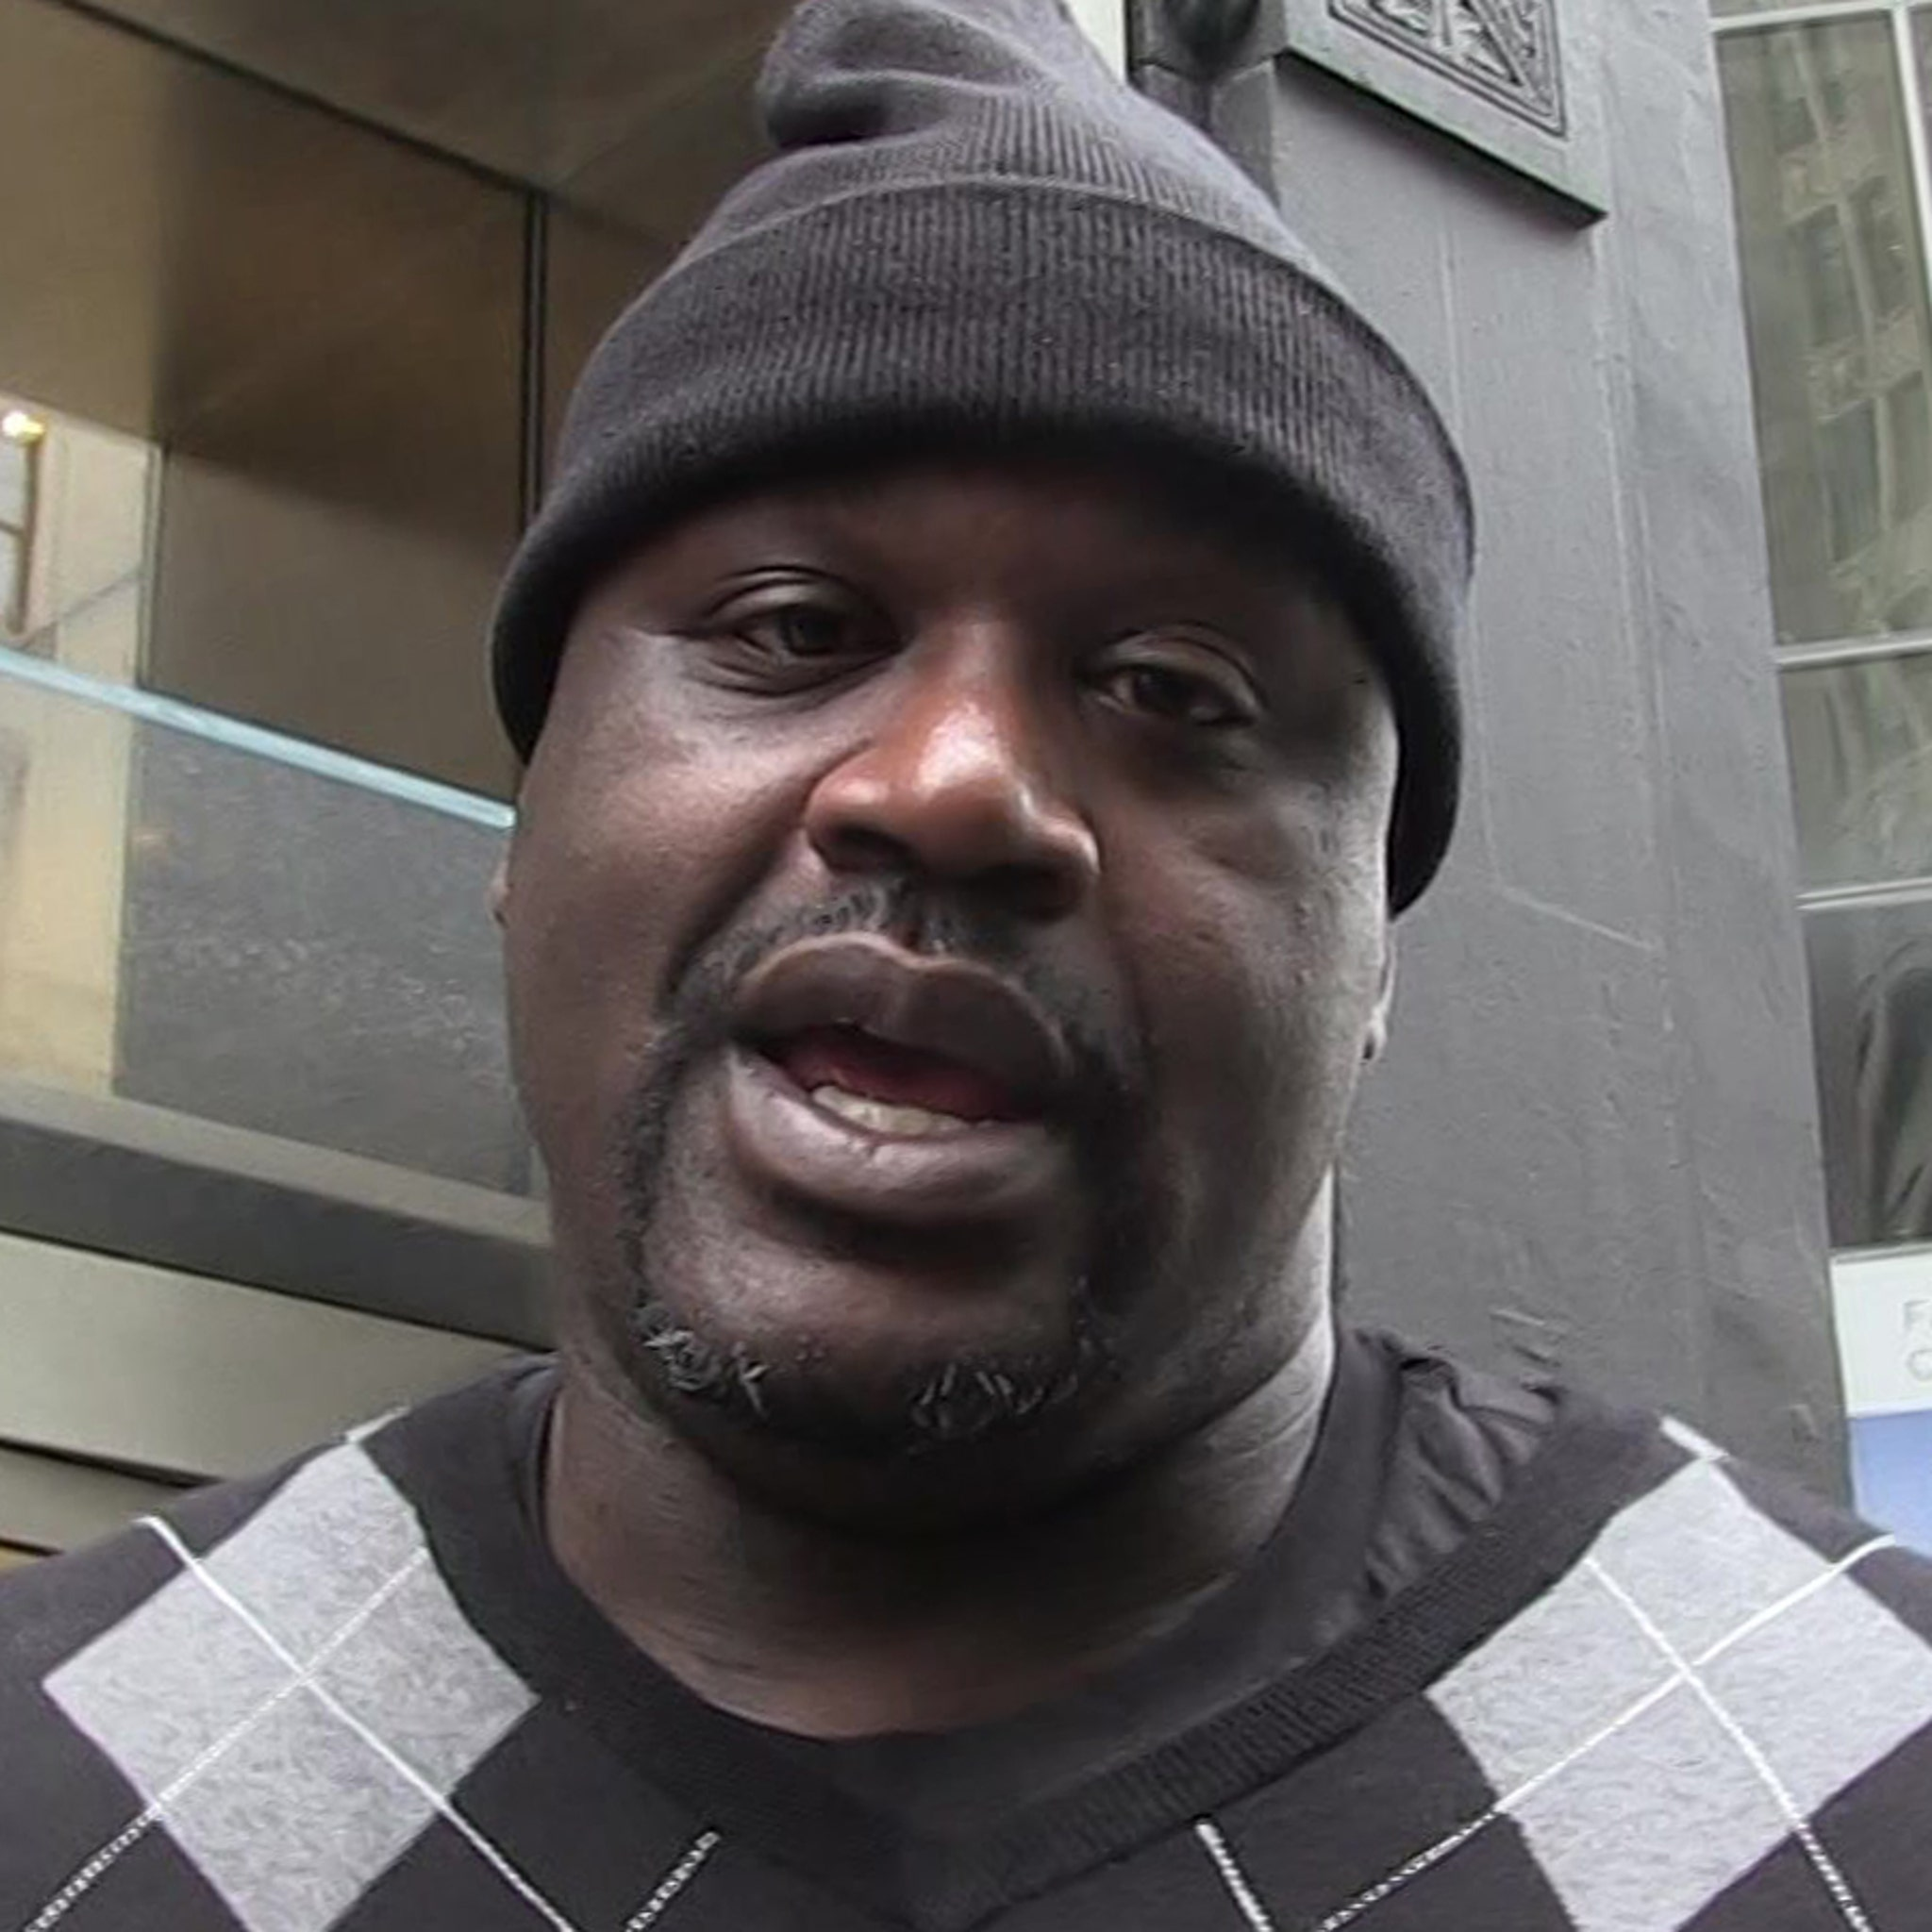 Shaquille O'Neal Paying for Home for Family Of Boy Paralyzed In Shooting